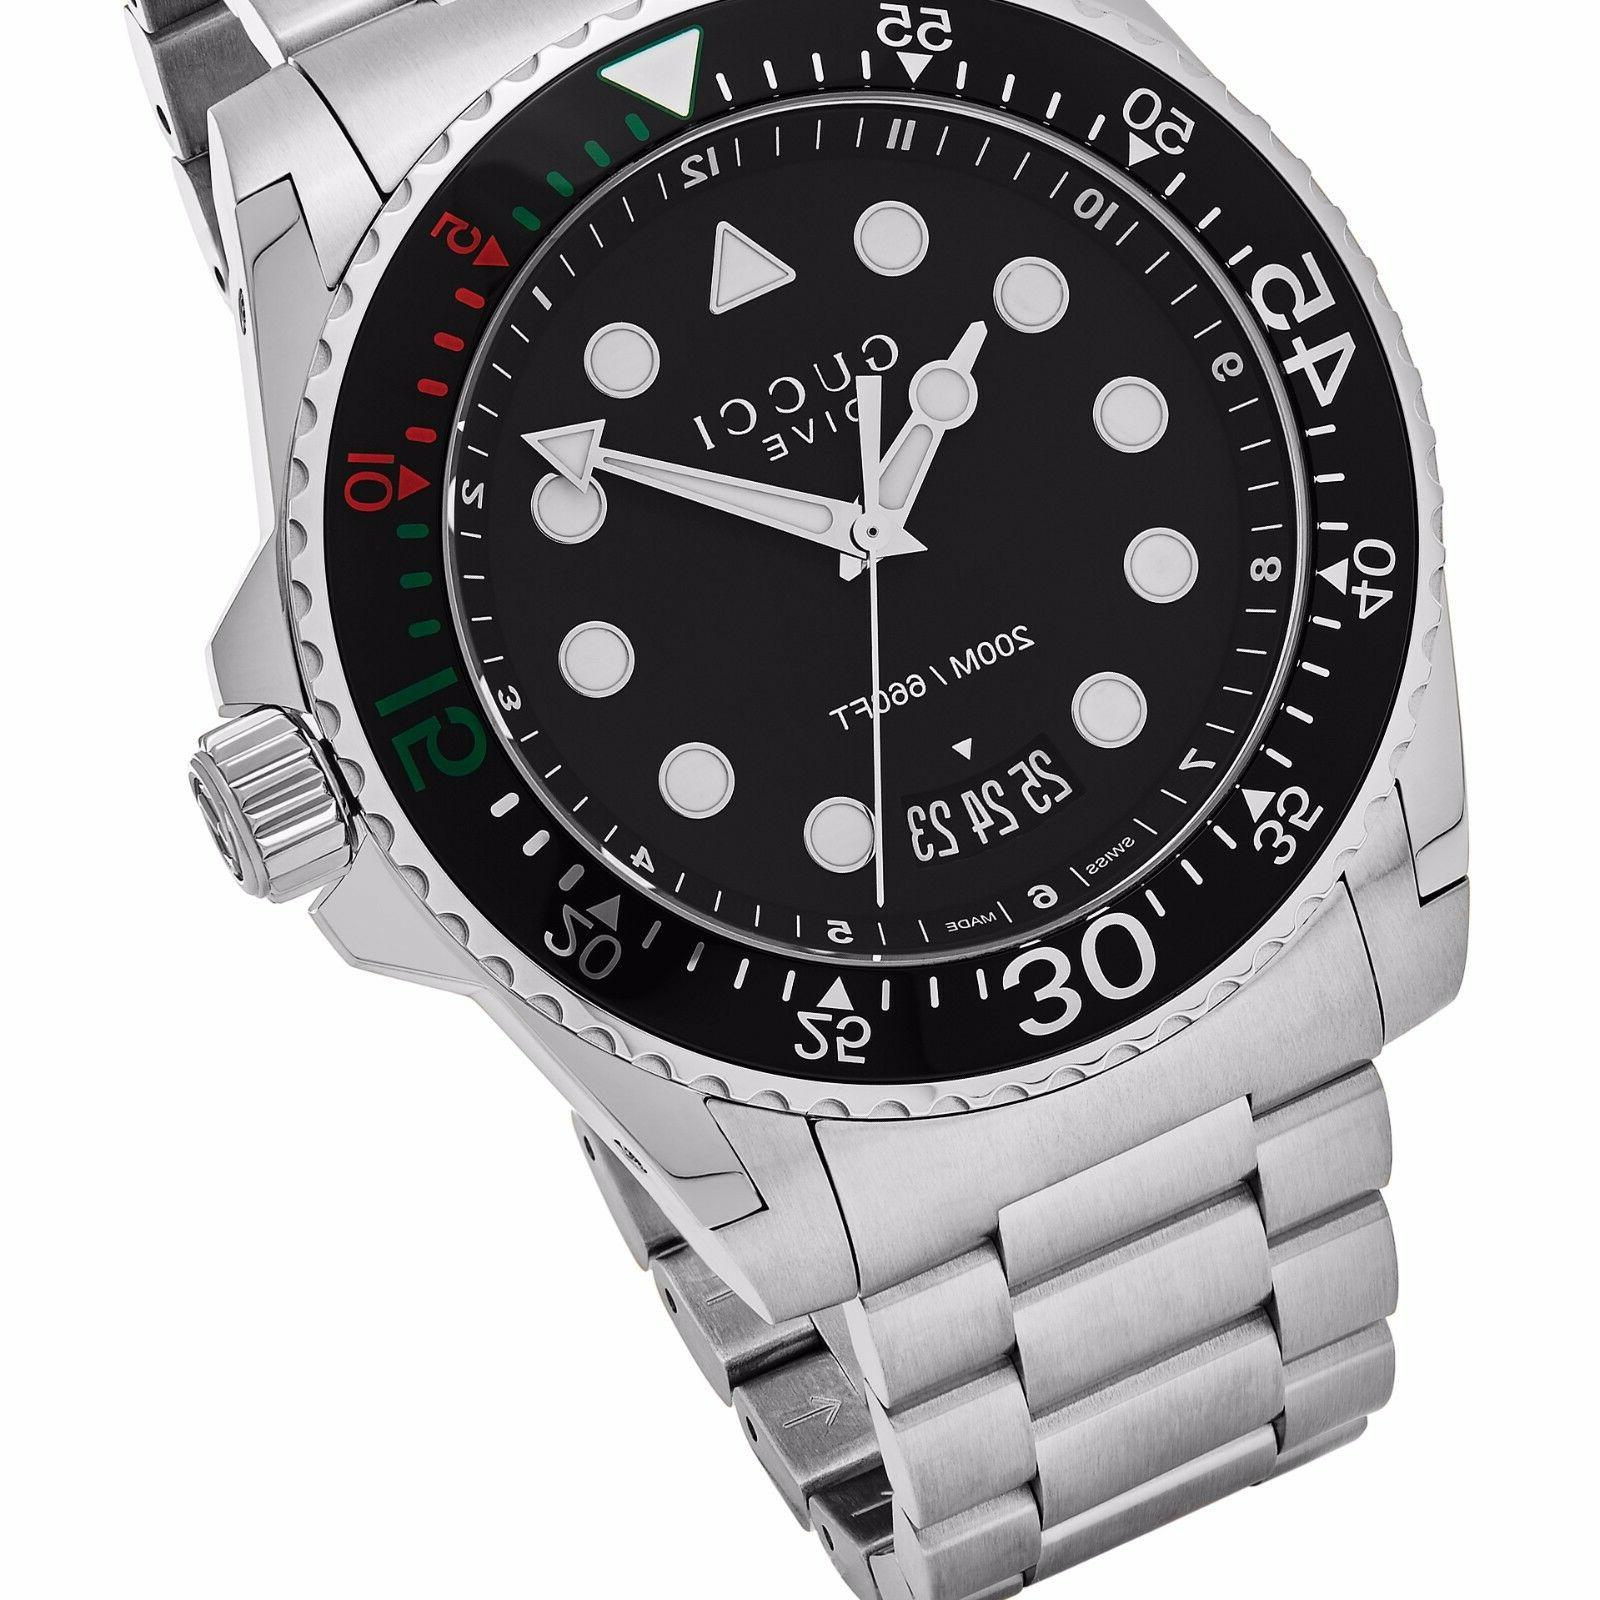 Gucci Men's Dive Black Dial Stainless Steel Quartz Watch